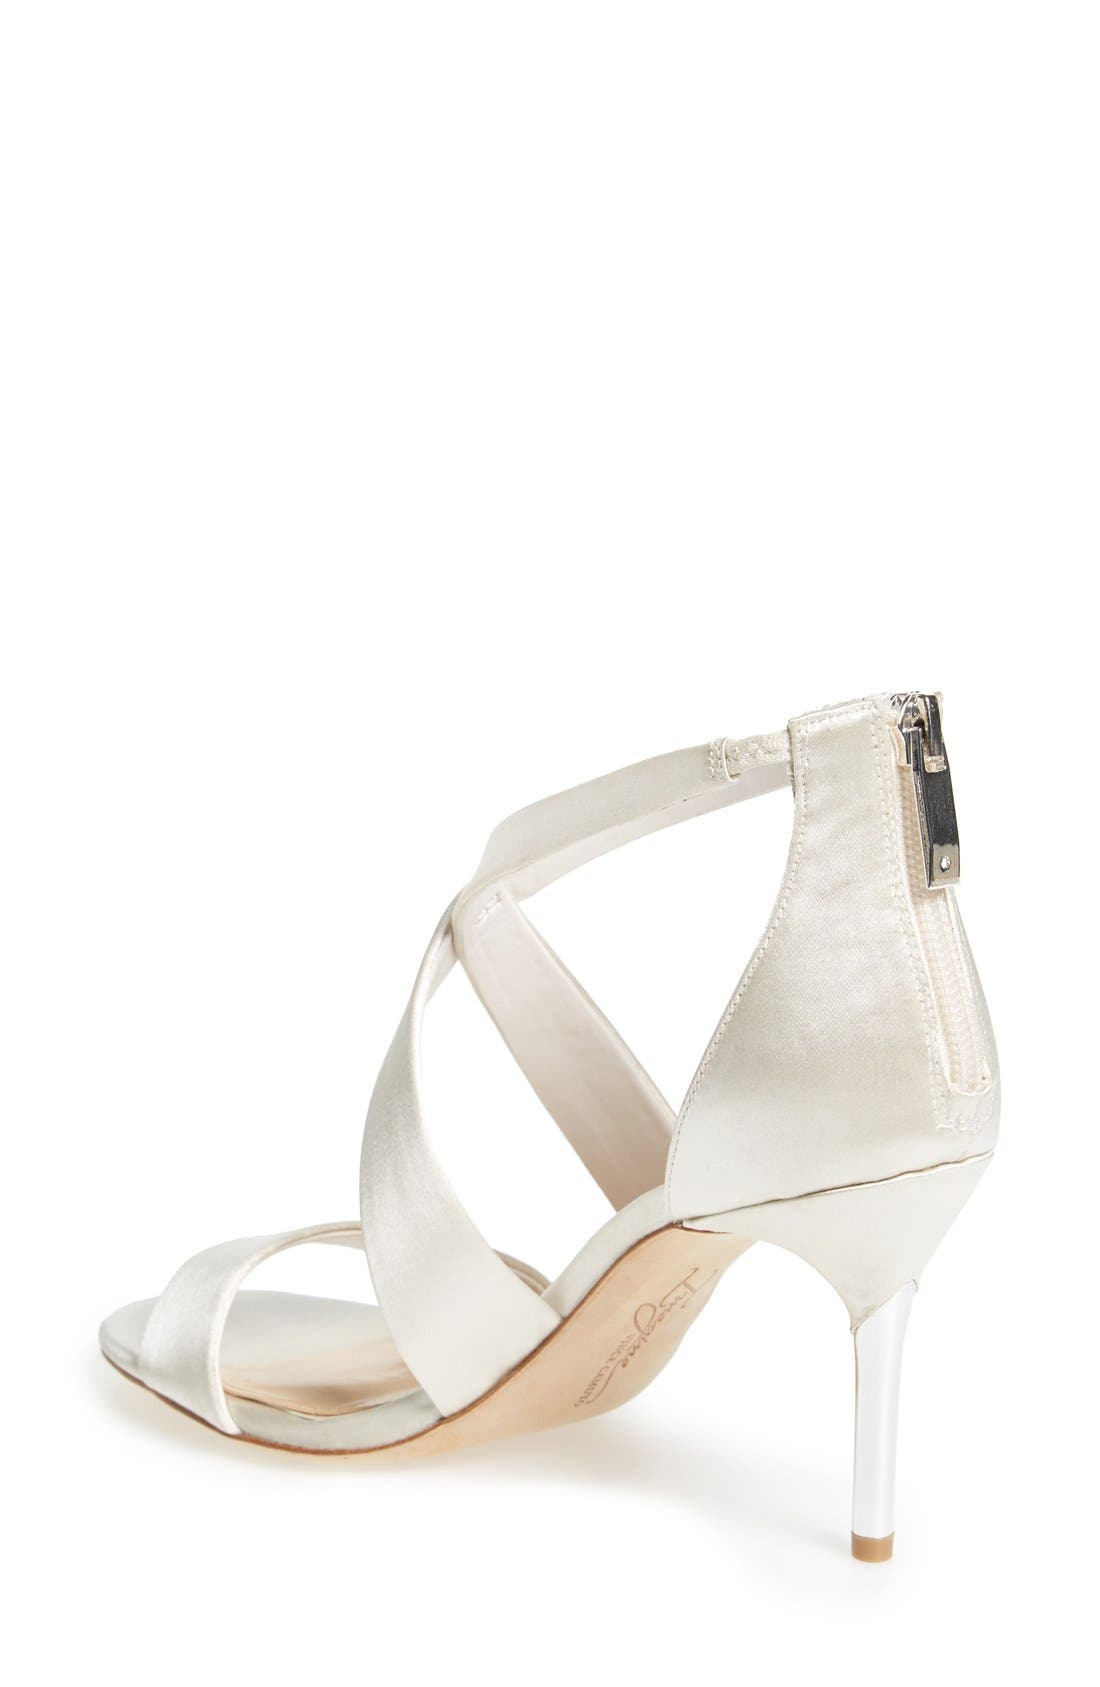 'Pascal' Sandal,                             Alternate thumbnail 2, color,                             Ivory Satin